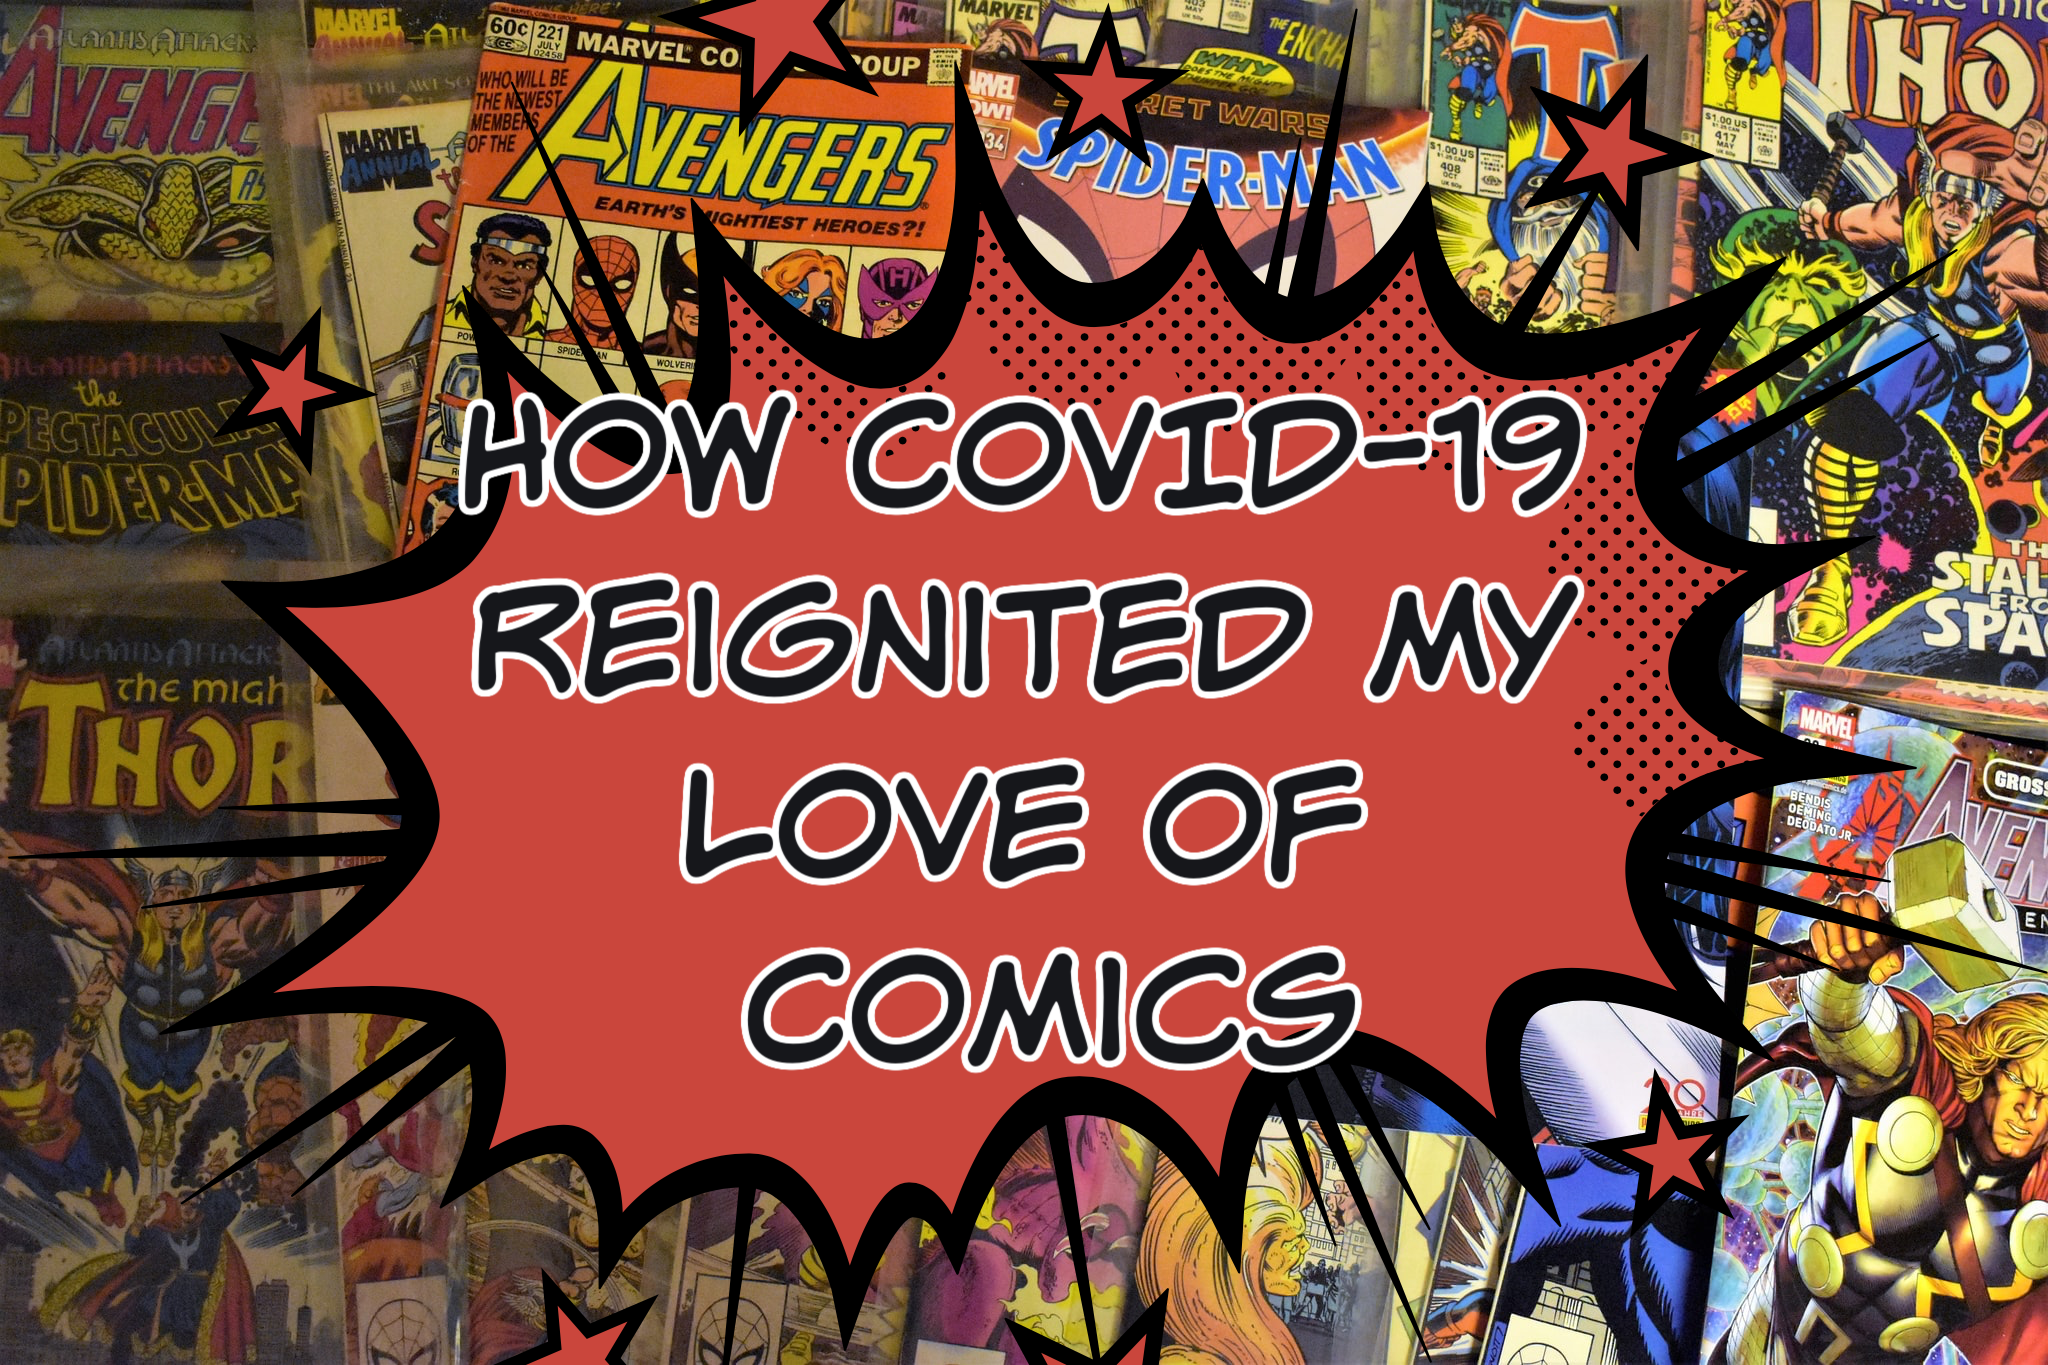 How COVID-19 Reignited my Love of Comics, a Guest Post by Pete Mesling